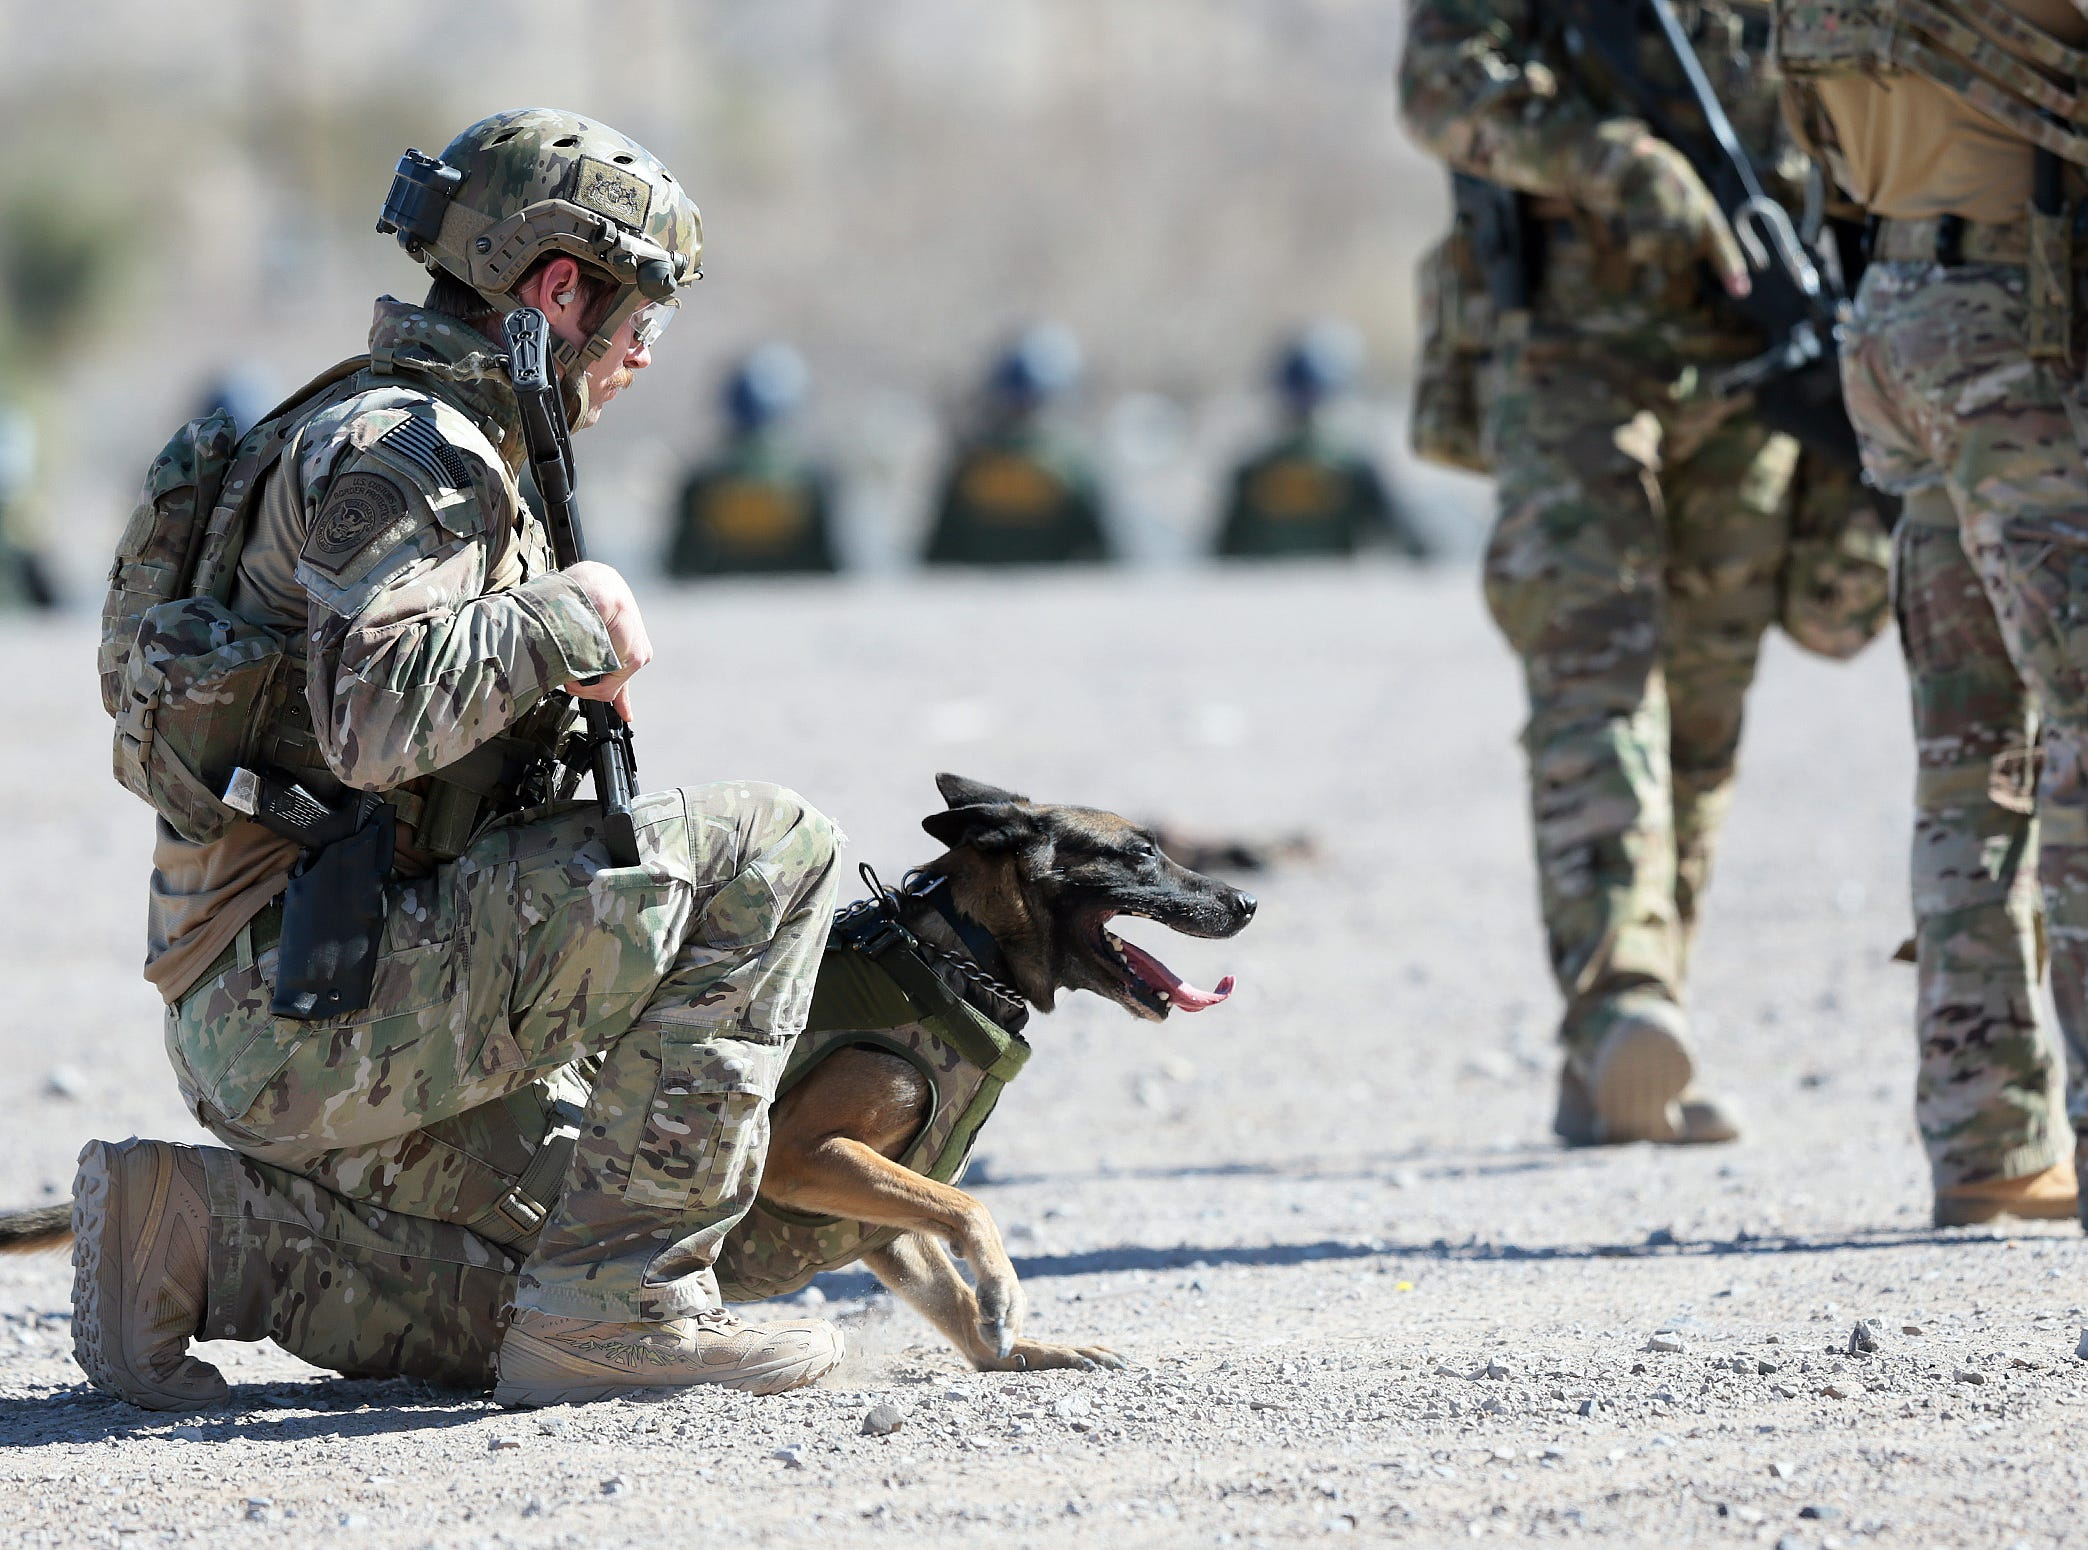 A dog takes part as Border Patrol agents join forces with ICE and U.S. Customs and Border Protection's Air and Marine Operations in a training exercise Thursday, Jan. 31, 2019, along the border fence in Anapra, New Mexico. The training is preparation for any border surge that might occur.